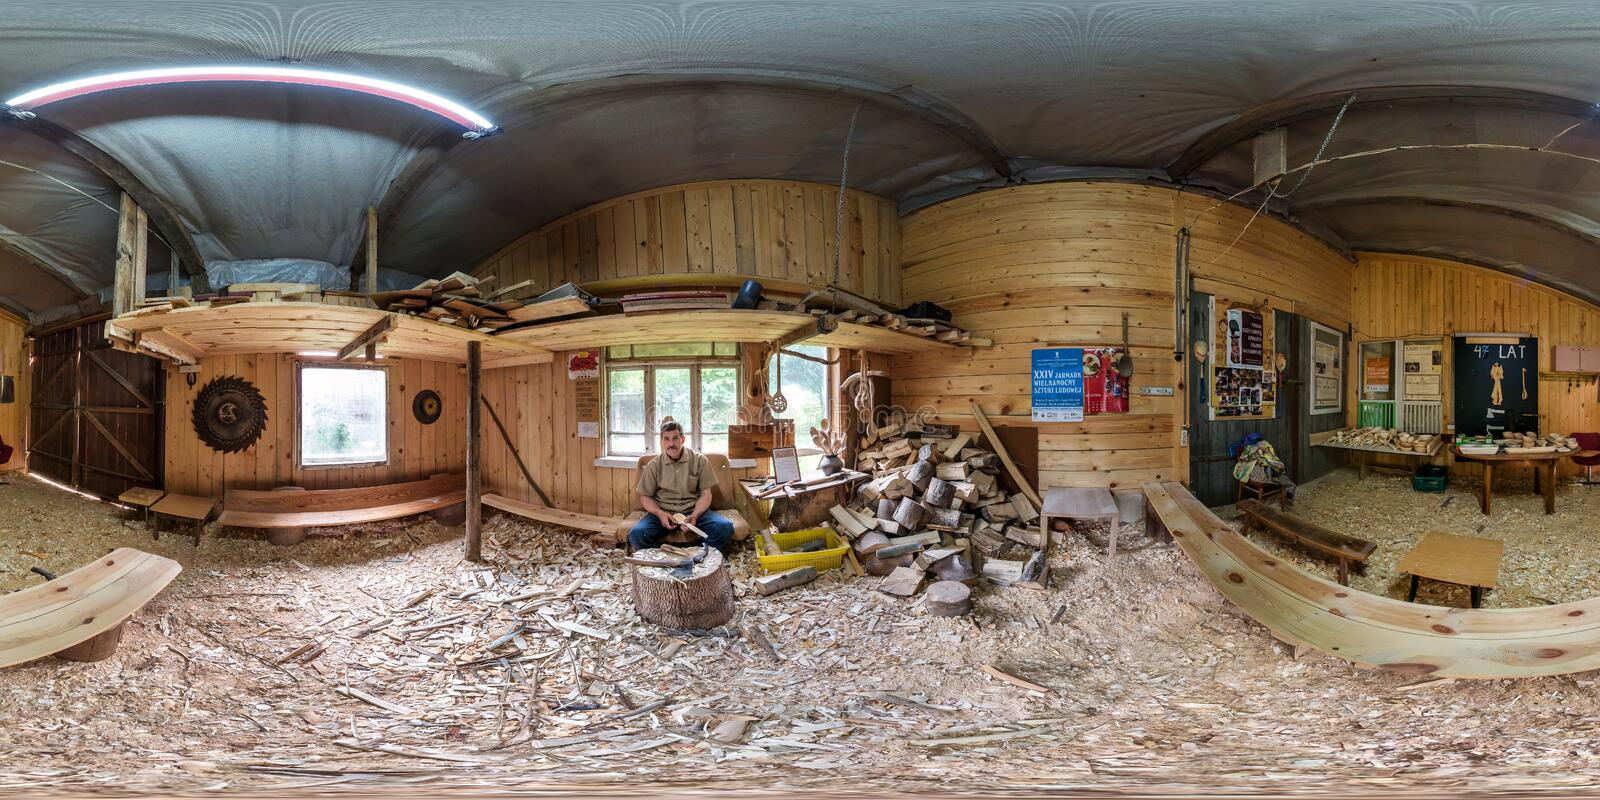 BIALYSTOK, POLAND - JULY 2019: Full spherical seamless hdri panorama 360 degrees angle view in interior of wooden spoon workshop royalty free stock image